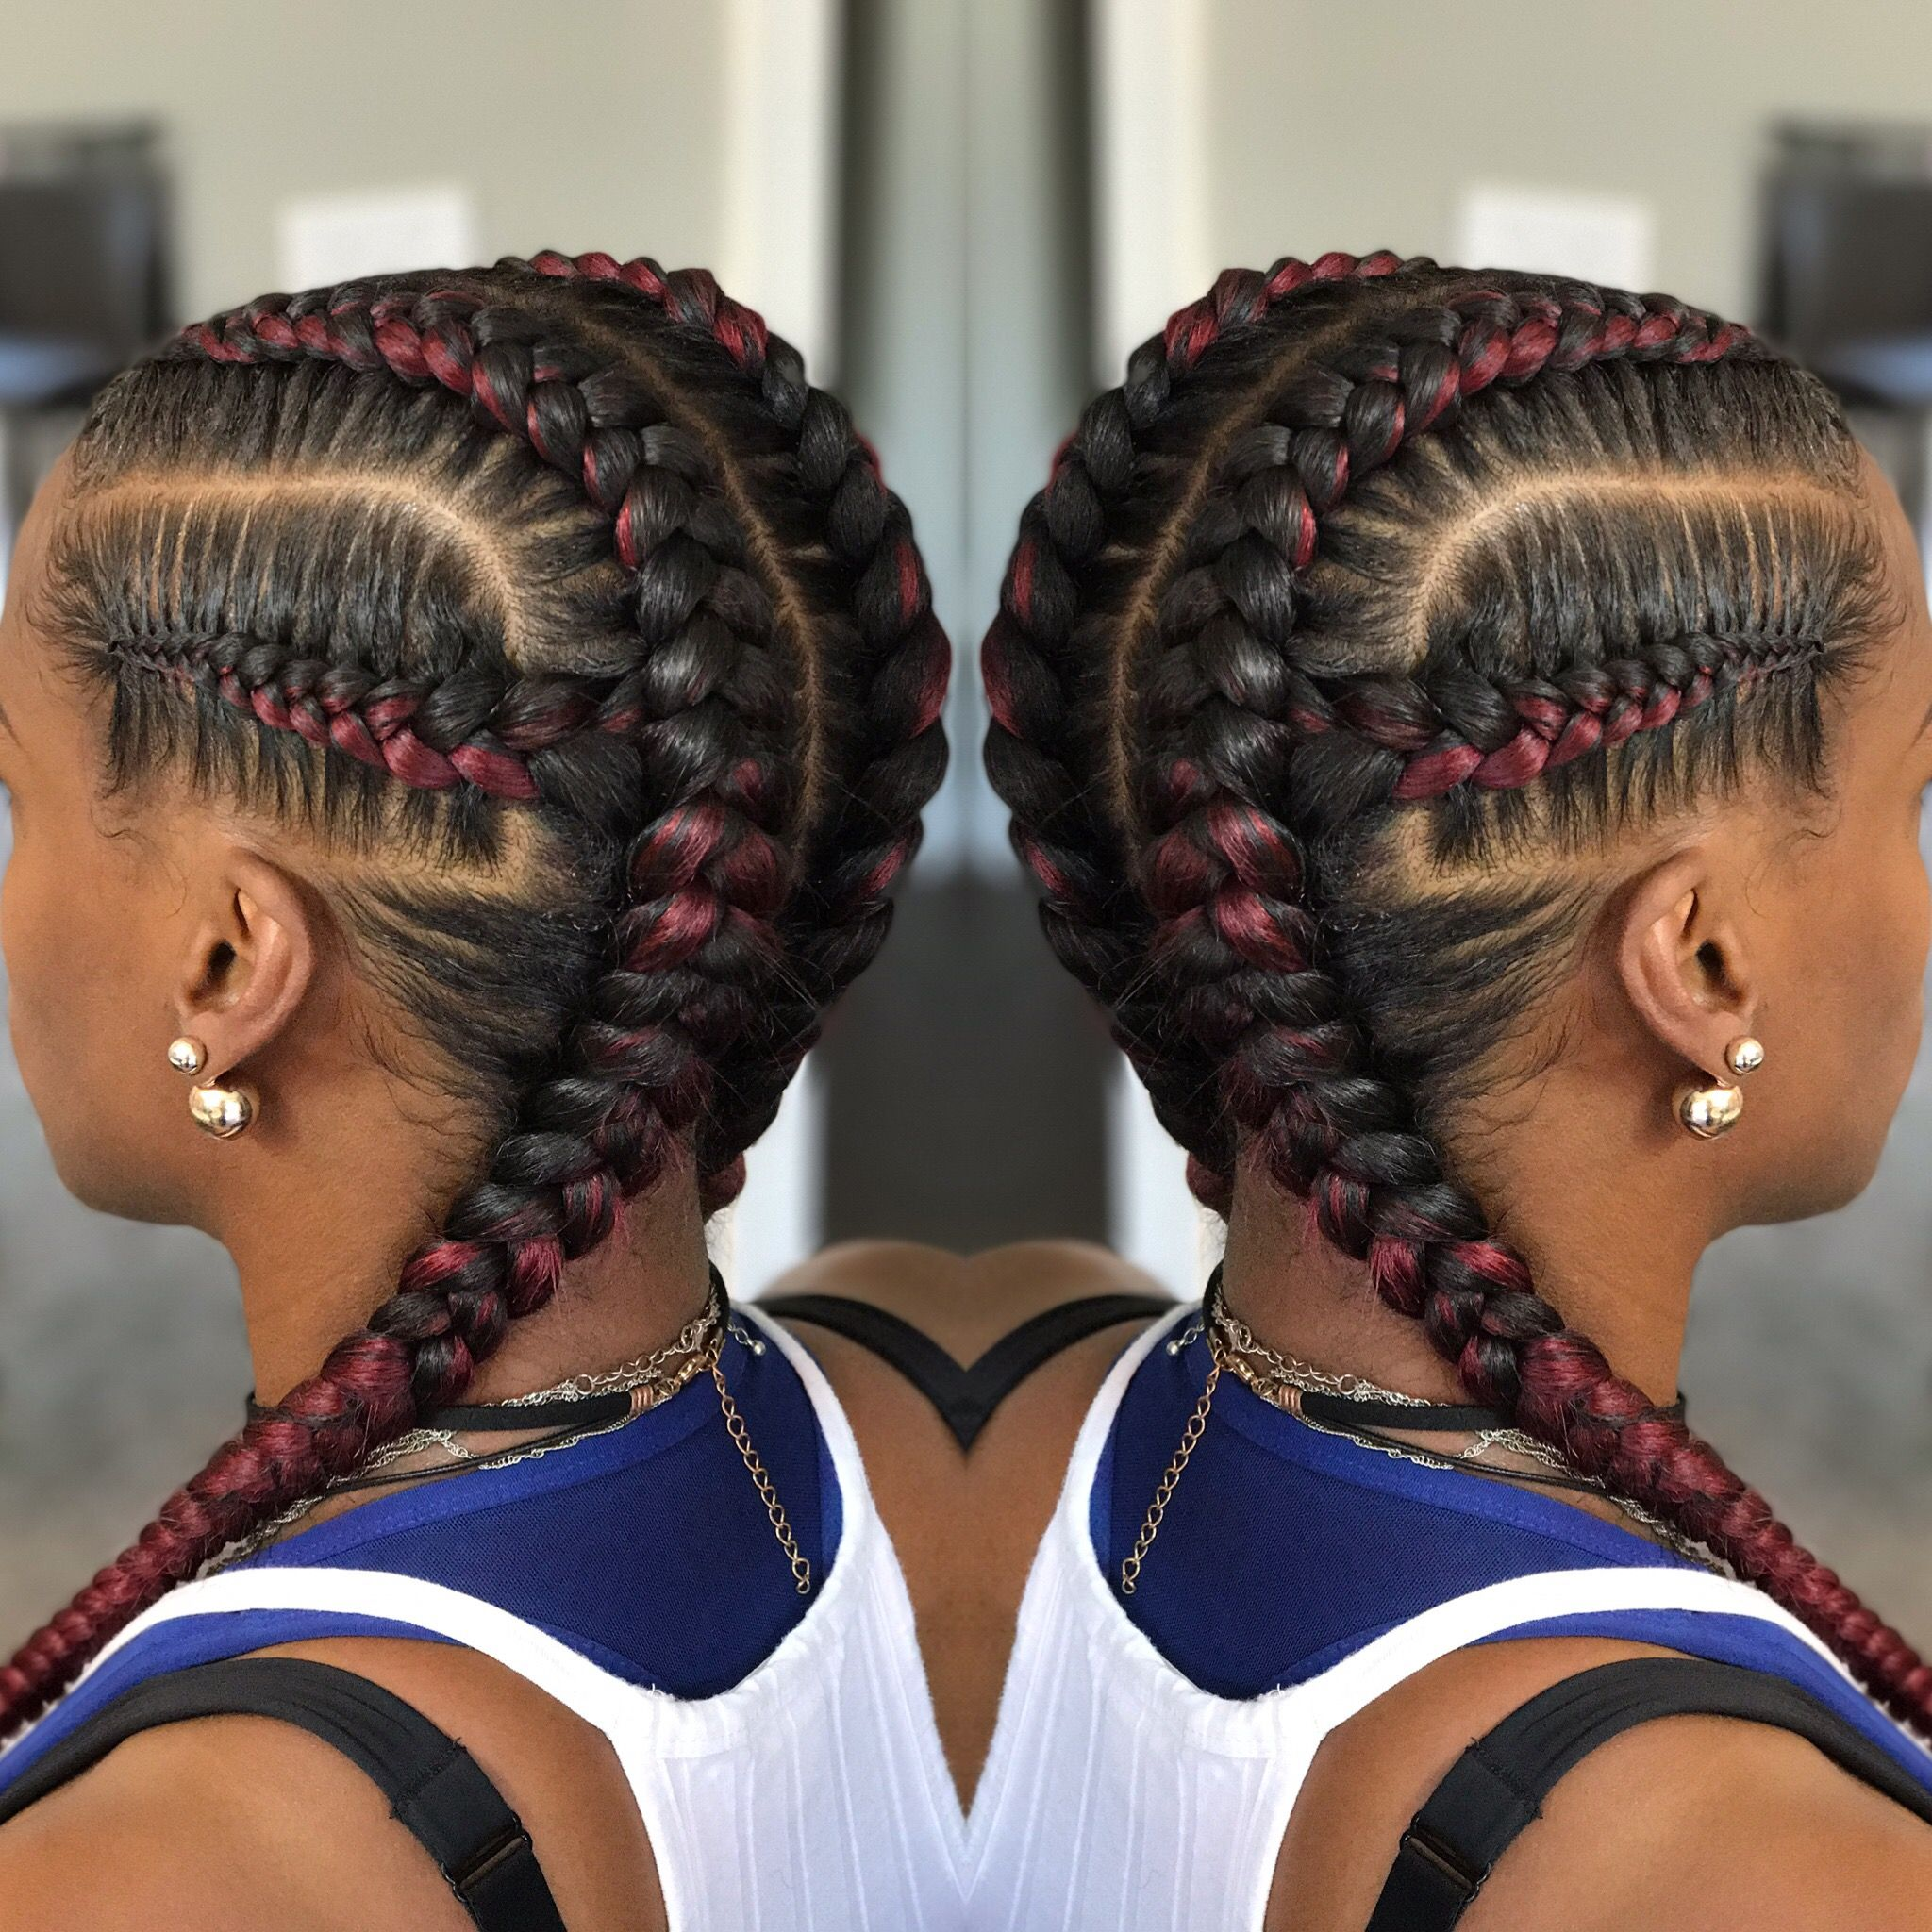 Queen Bee Hair Salon Is Located At 3800 North Broad Street Pa African Hair Braiding African Hairstyles Braided Hairstyles Short Natural Hair Styles